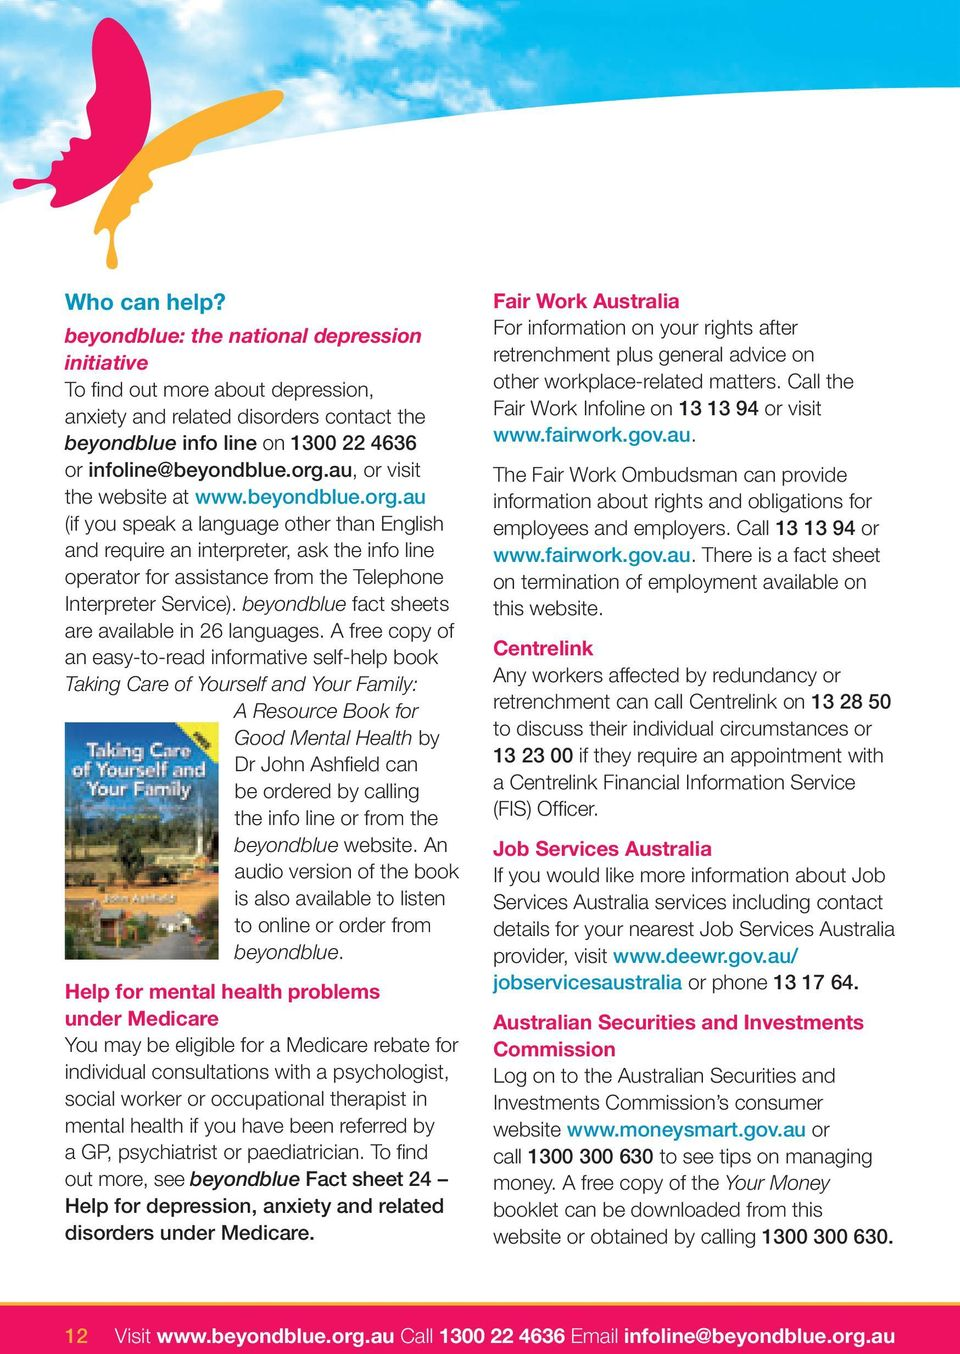 beyondblue fact sheets are available in 26 languages.